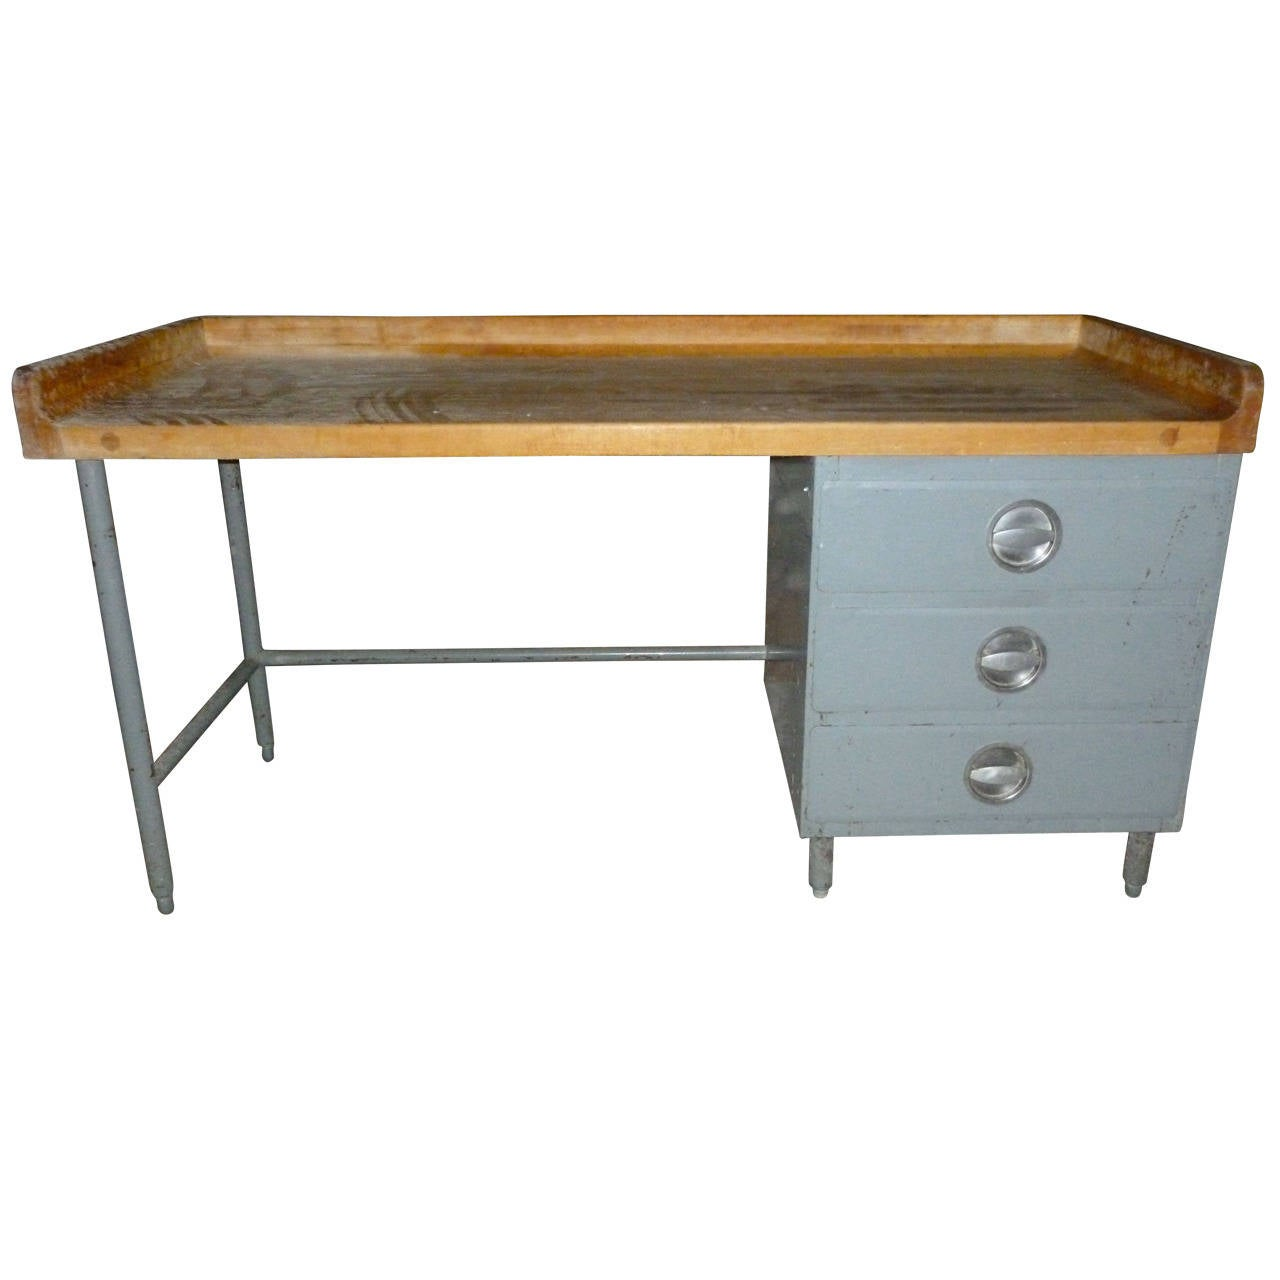 kitchen island food prep table with maple top steel frame and